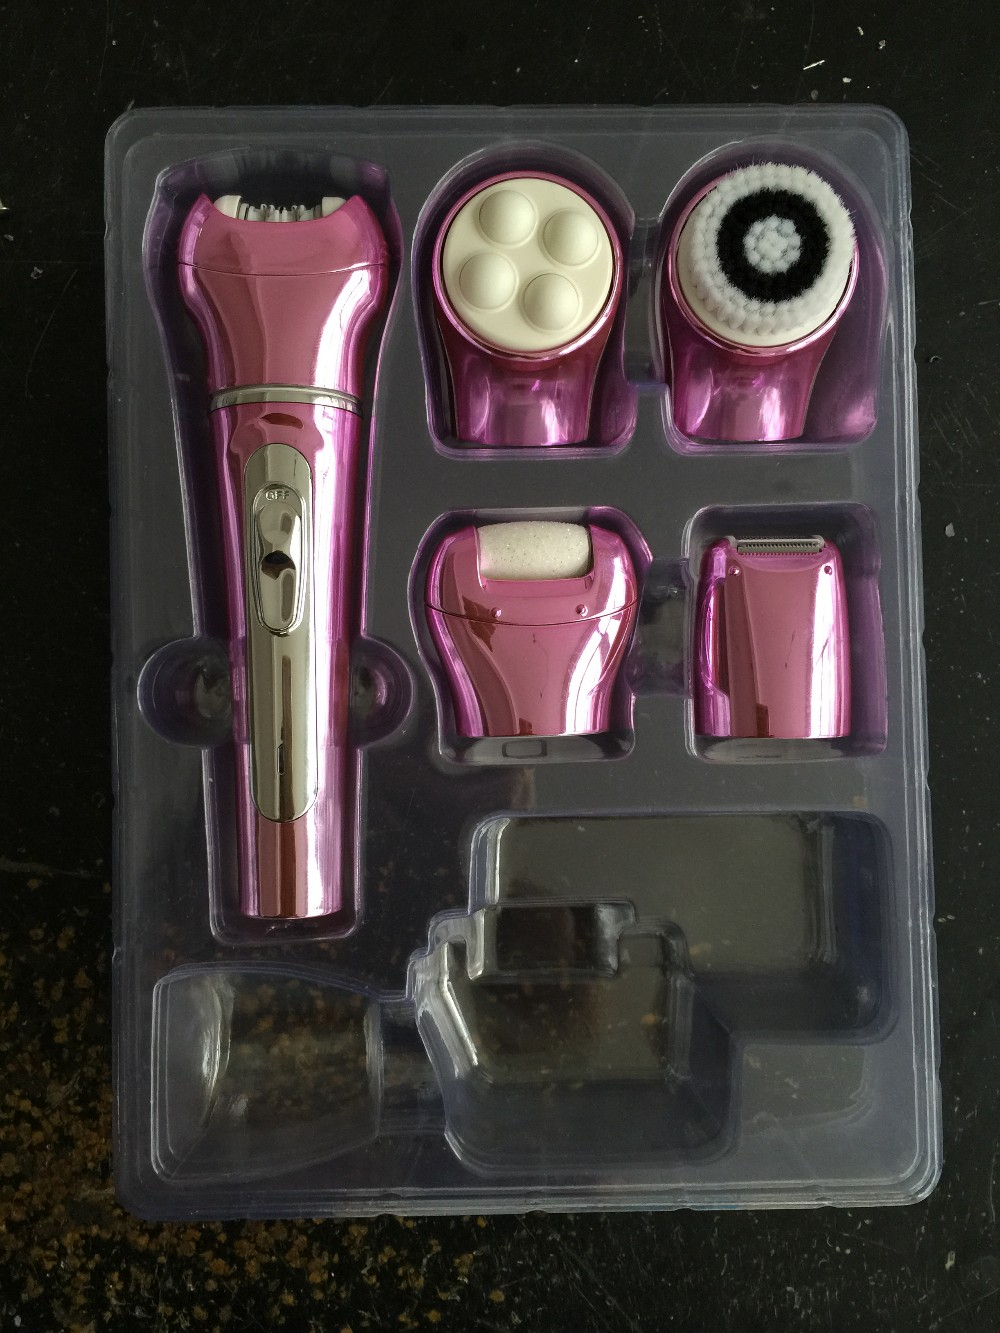 Multi-Function Travel Beauty Care Kit With Facial Cleaning, Massager, Shaver,Callus Remover